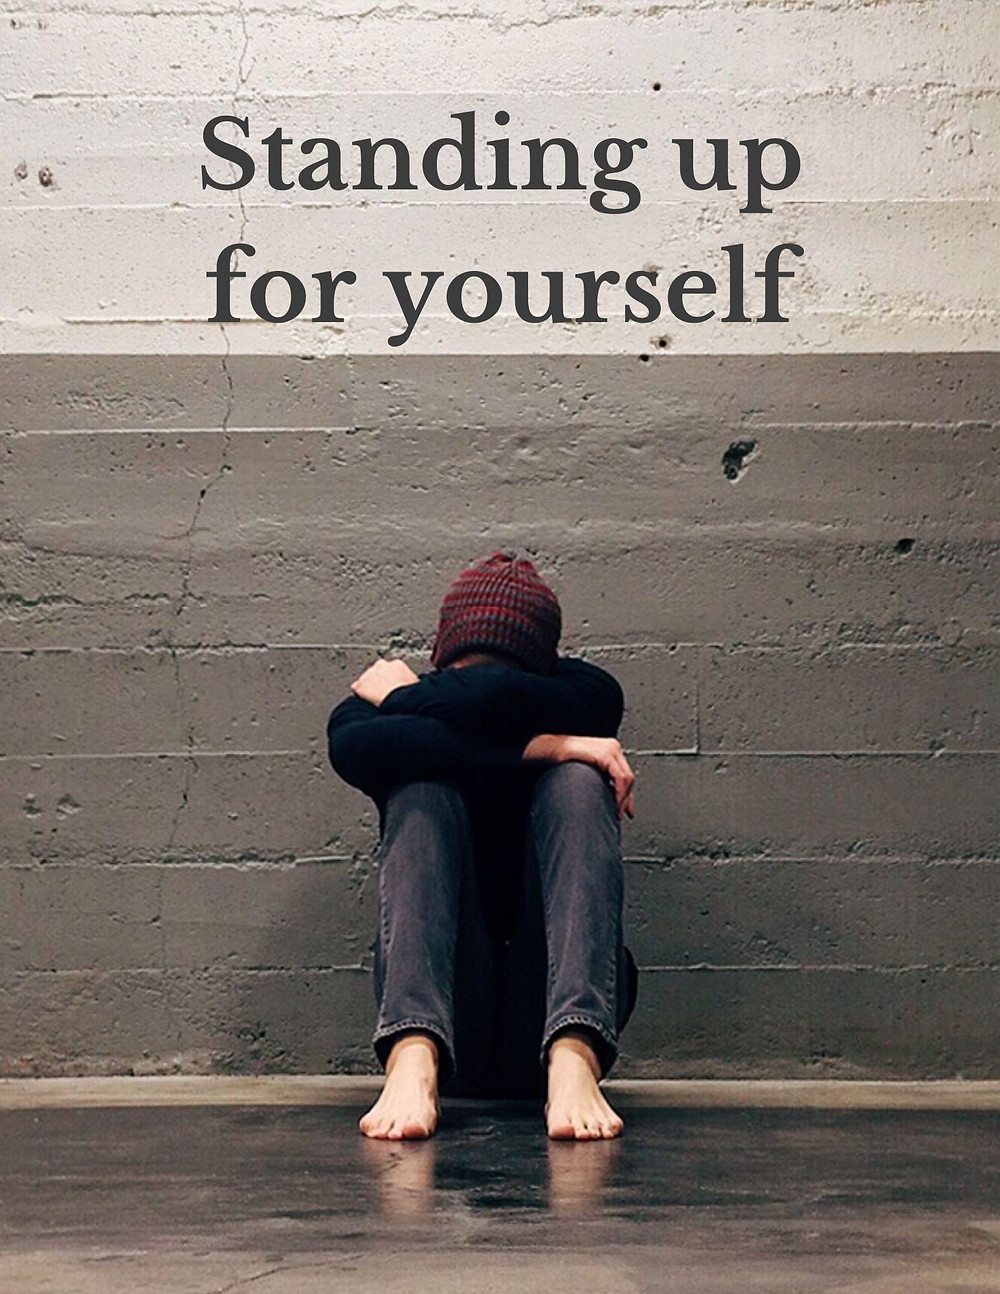 Standing up for yourself